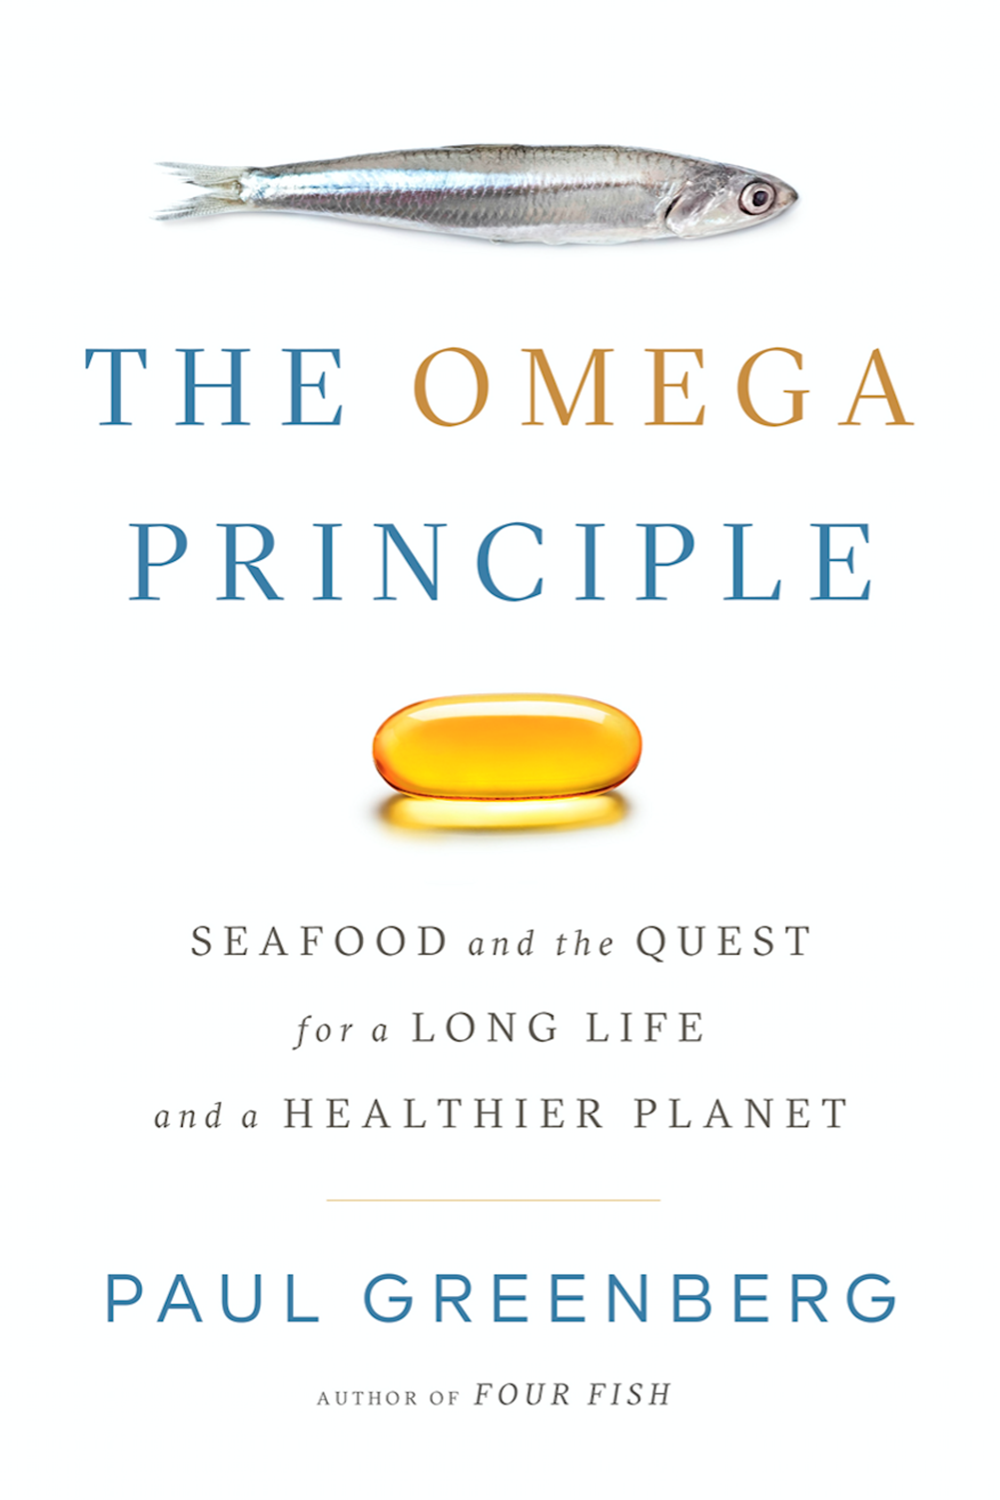 The Omega Principle book cover